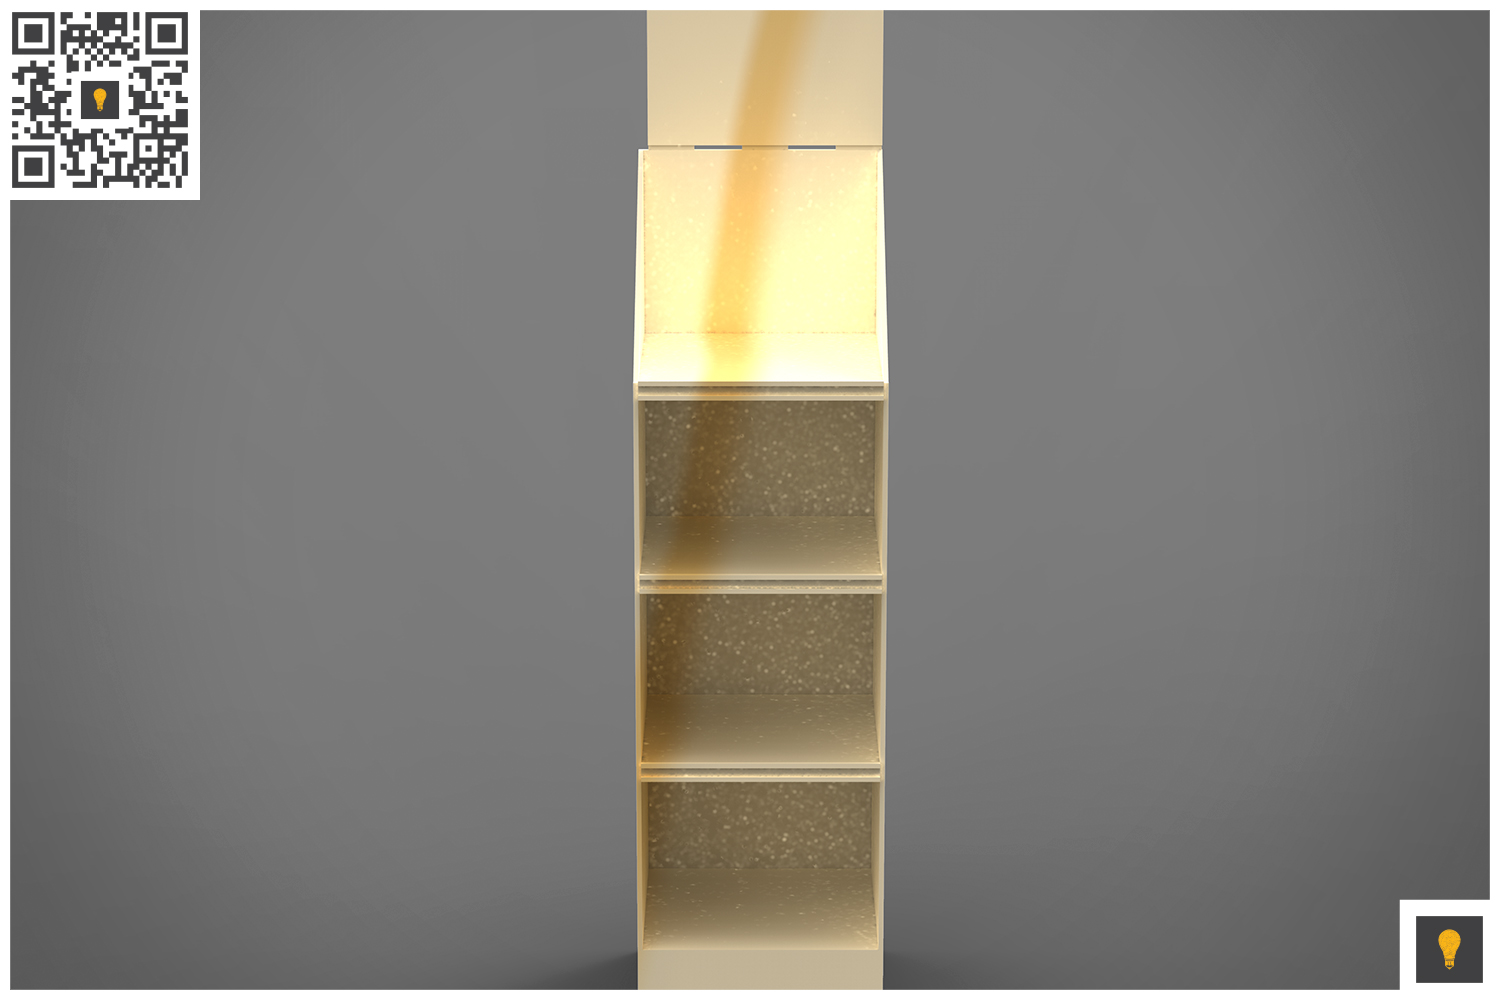 Promotional Store Shelf Stand 3D Render example image 10